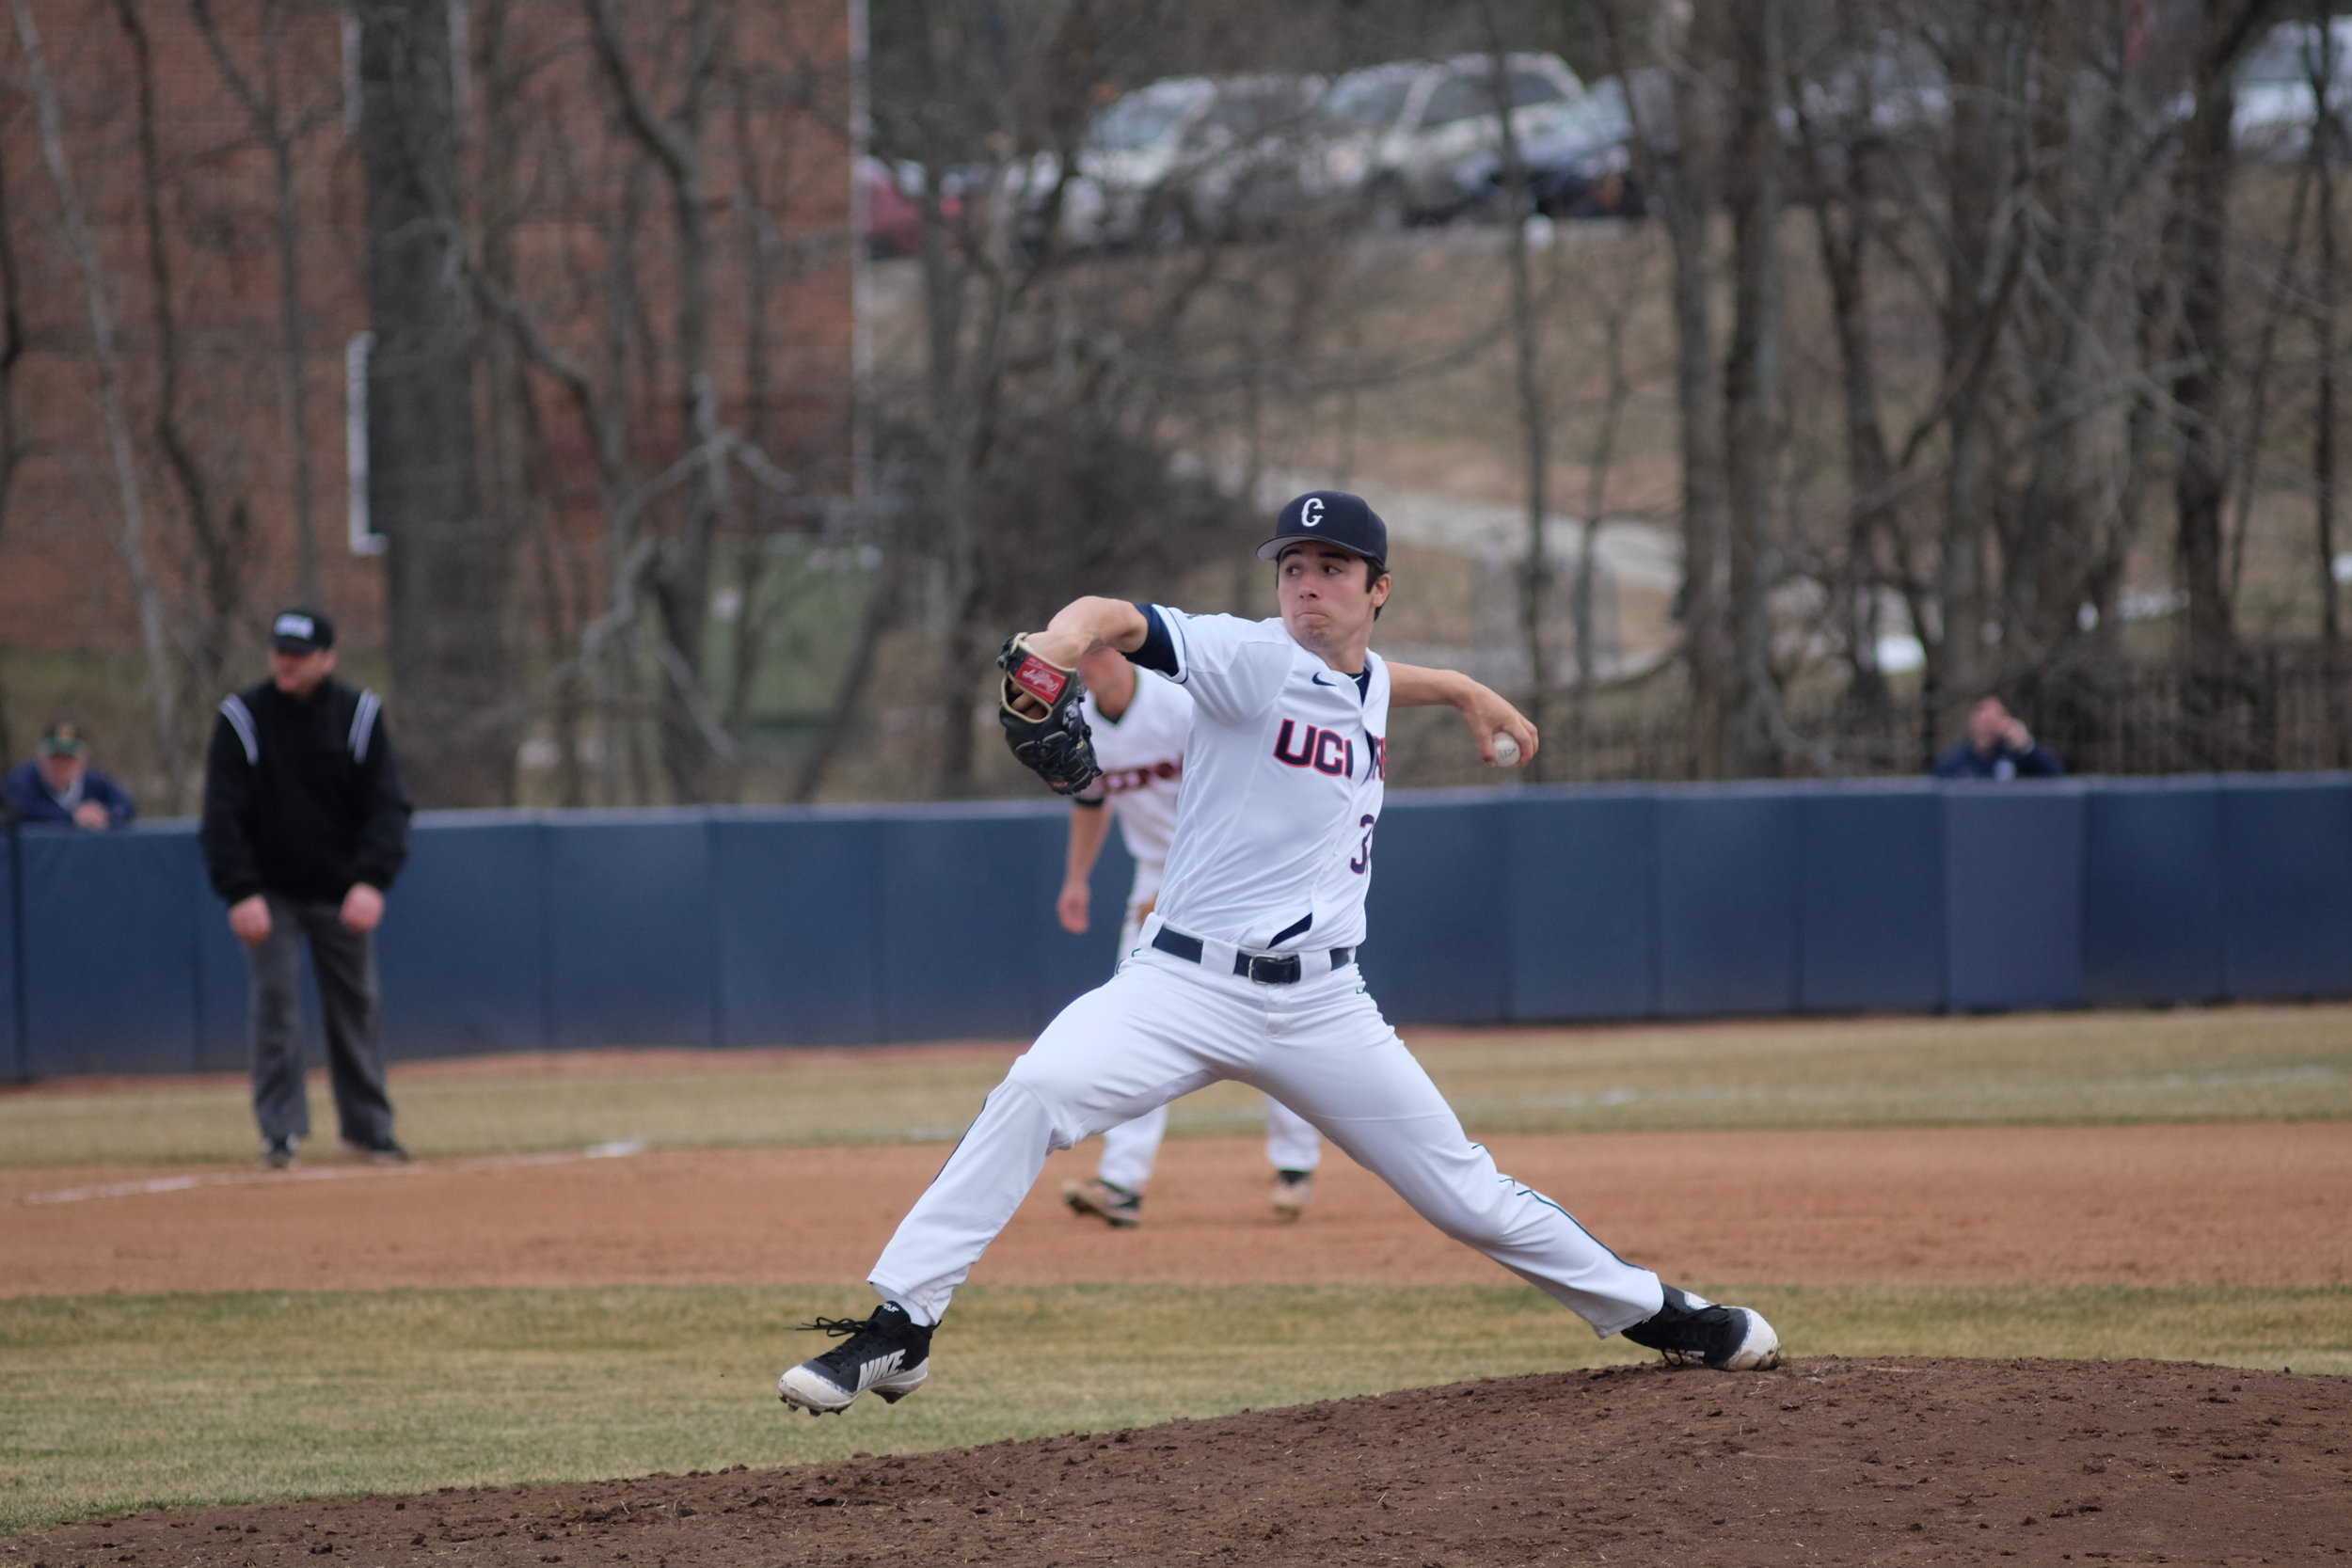 UConn will be back in action Friday at home against CCSU at 3 p.m. before they have a rematch against UHart Saturday at 3 p.m. at Dunkin' Donuts Park in Hartford. (Jon Sammis/The Daily Campus)